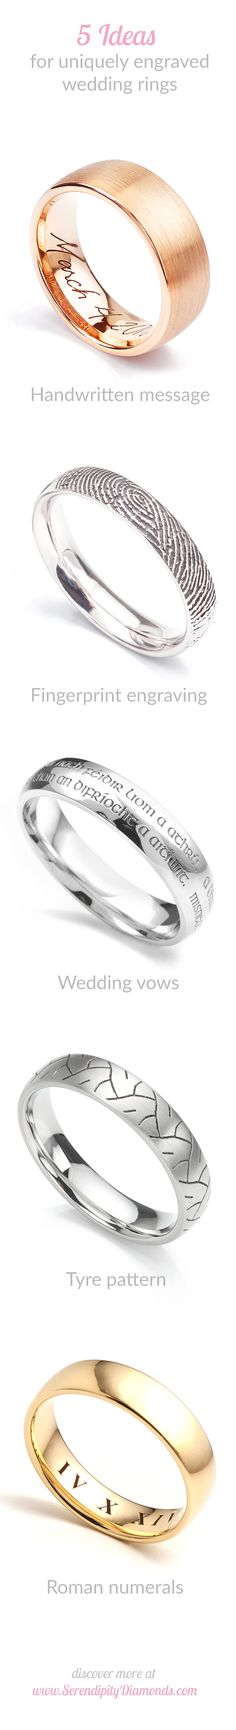 5 uniquely styled suggestions for spicing up a plain wedding ring. From fingerprint engraving, to a uniquely personal message, each option can be added to a plain wedding ring at Serendipity Diamonds.